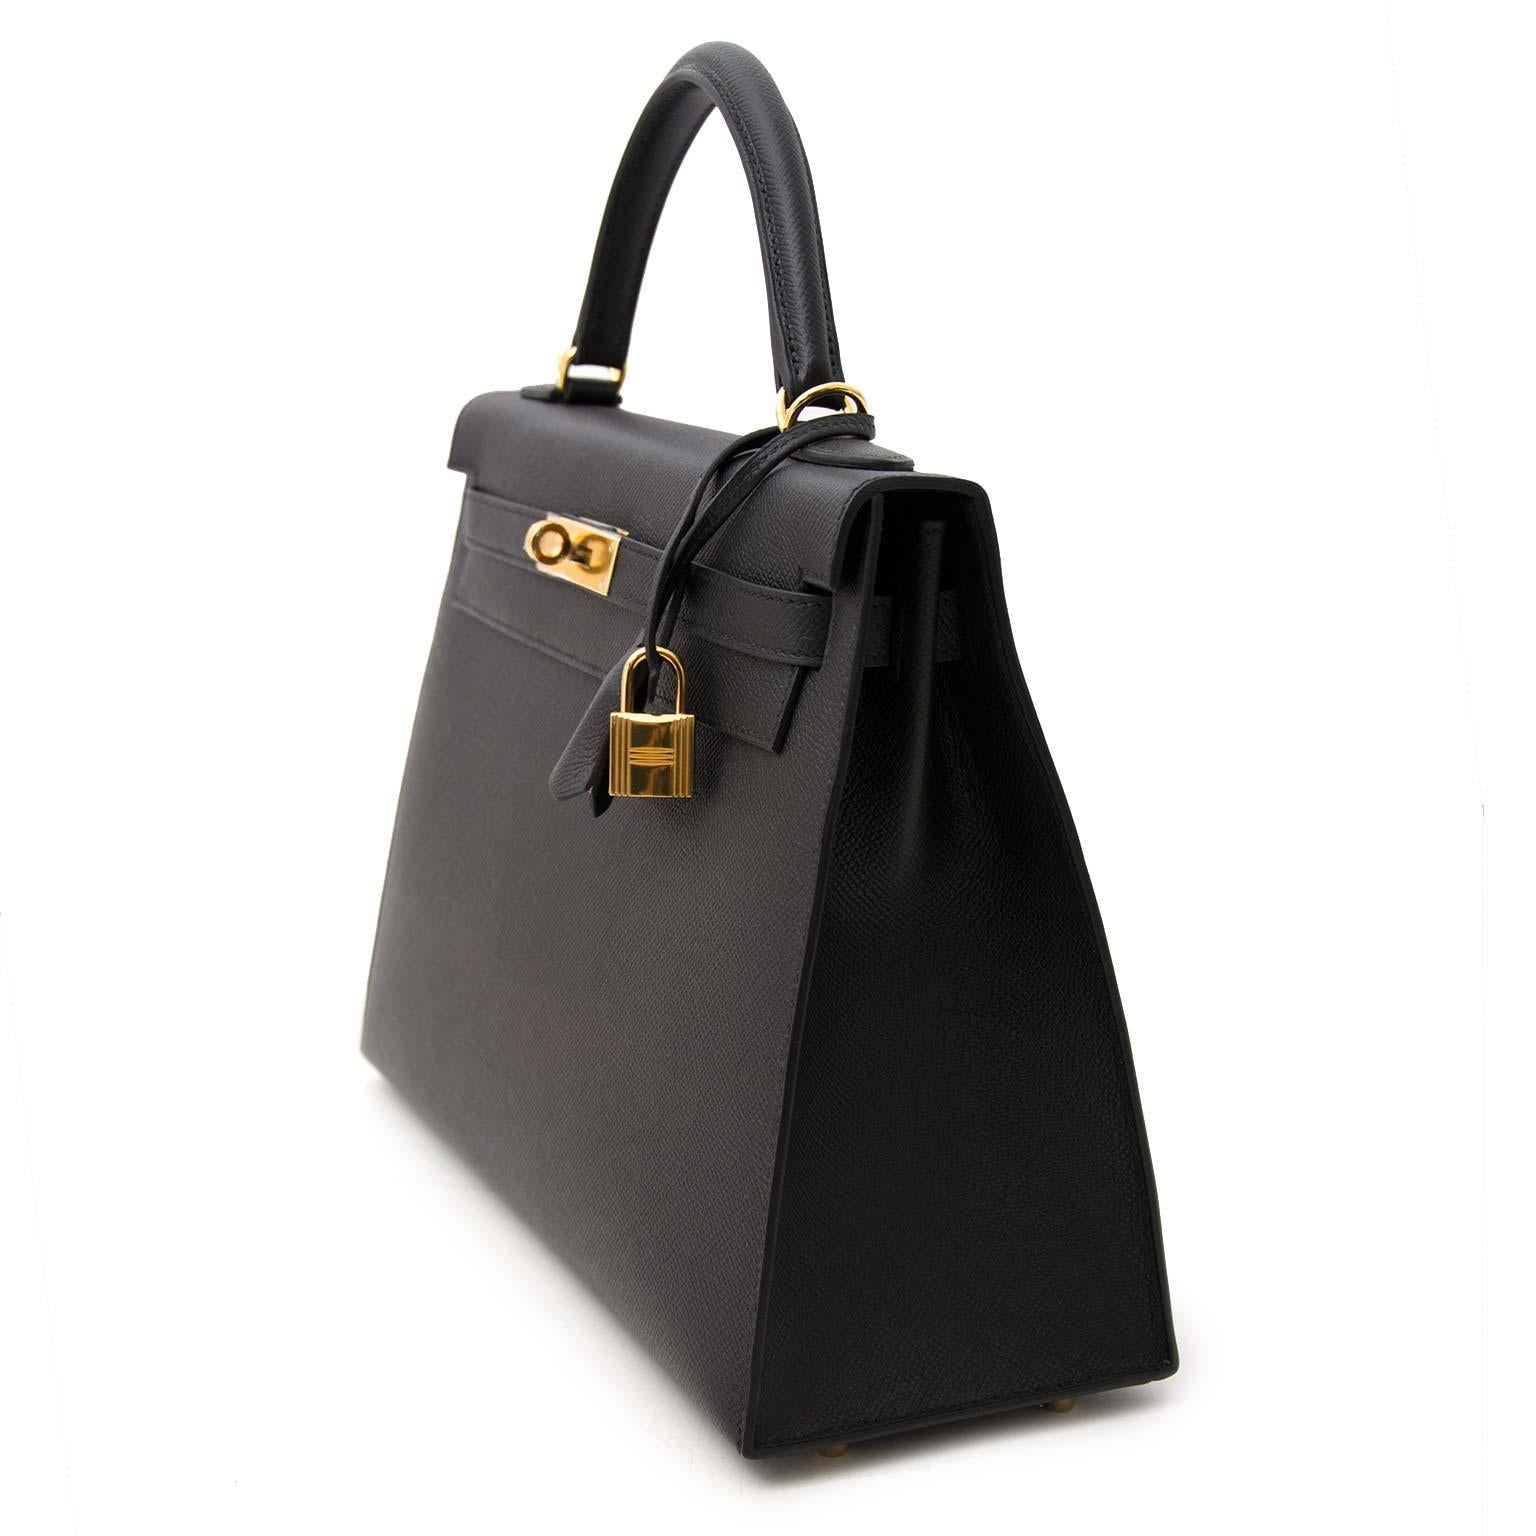 Hermes Epsom At Kelly For Sale 1stdibs Black 32 Ghw QdBeroxCW